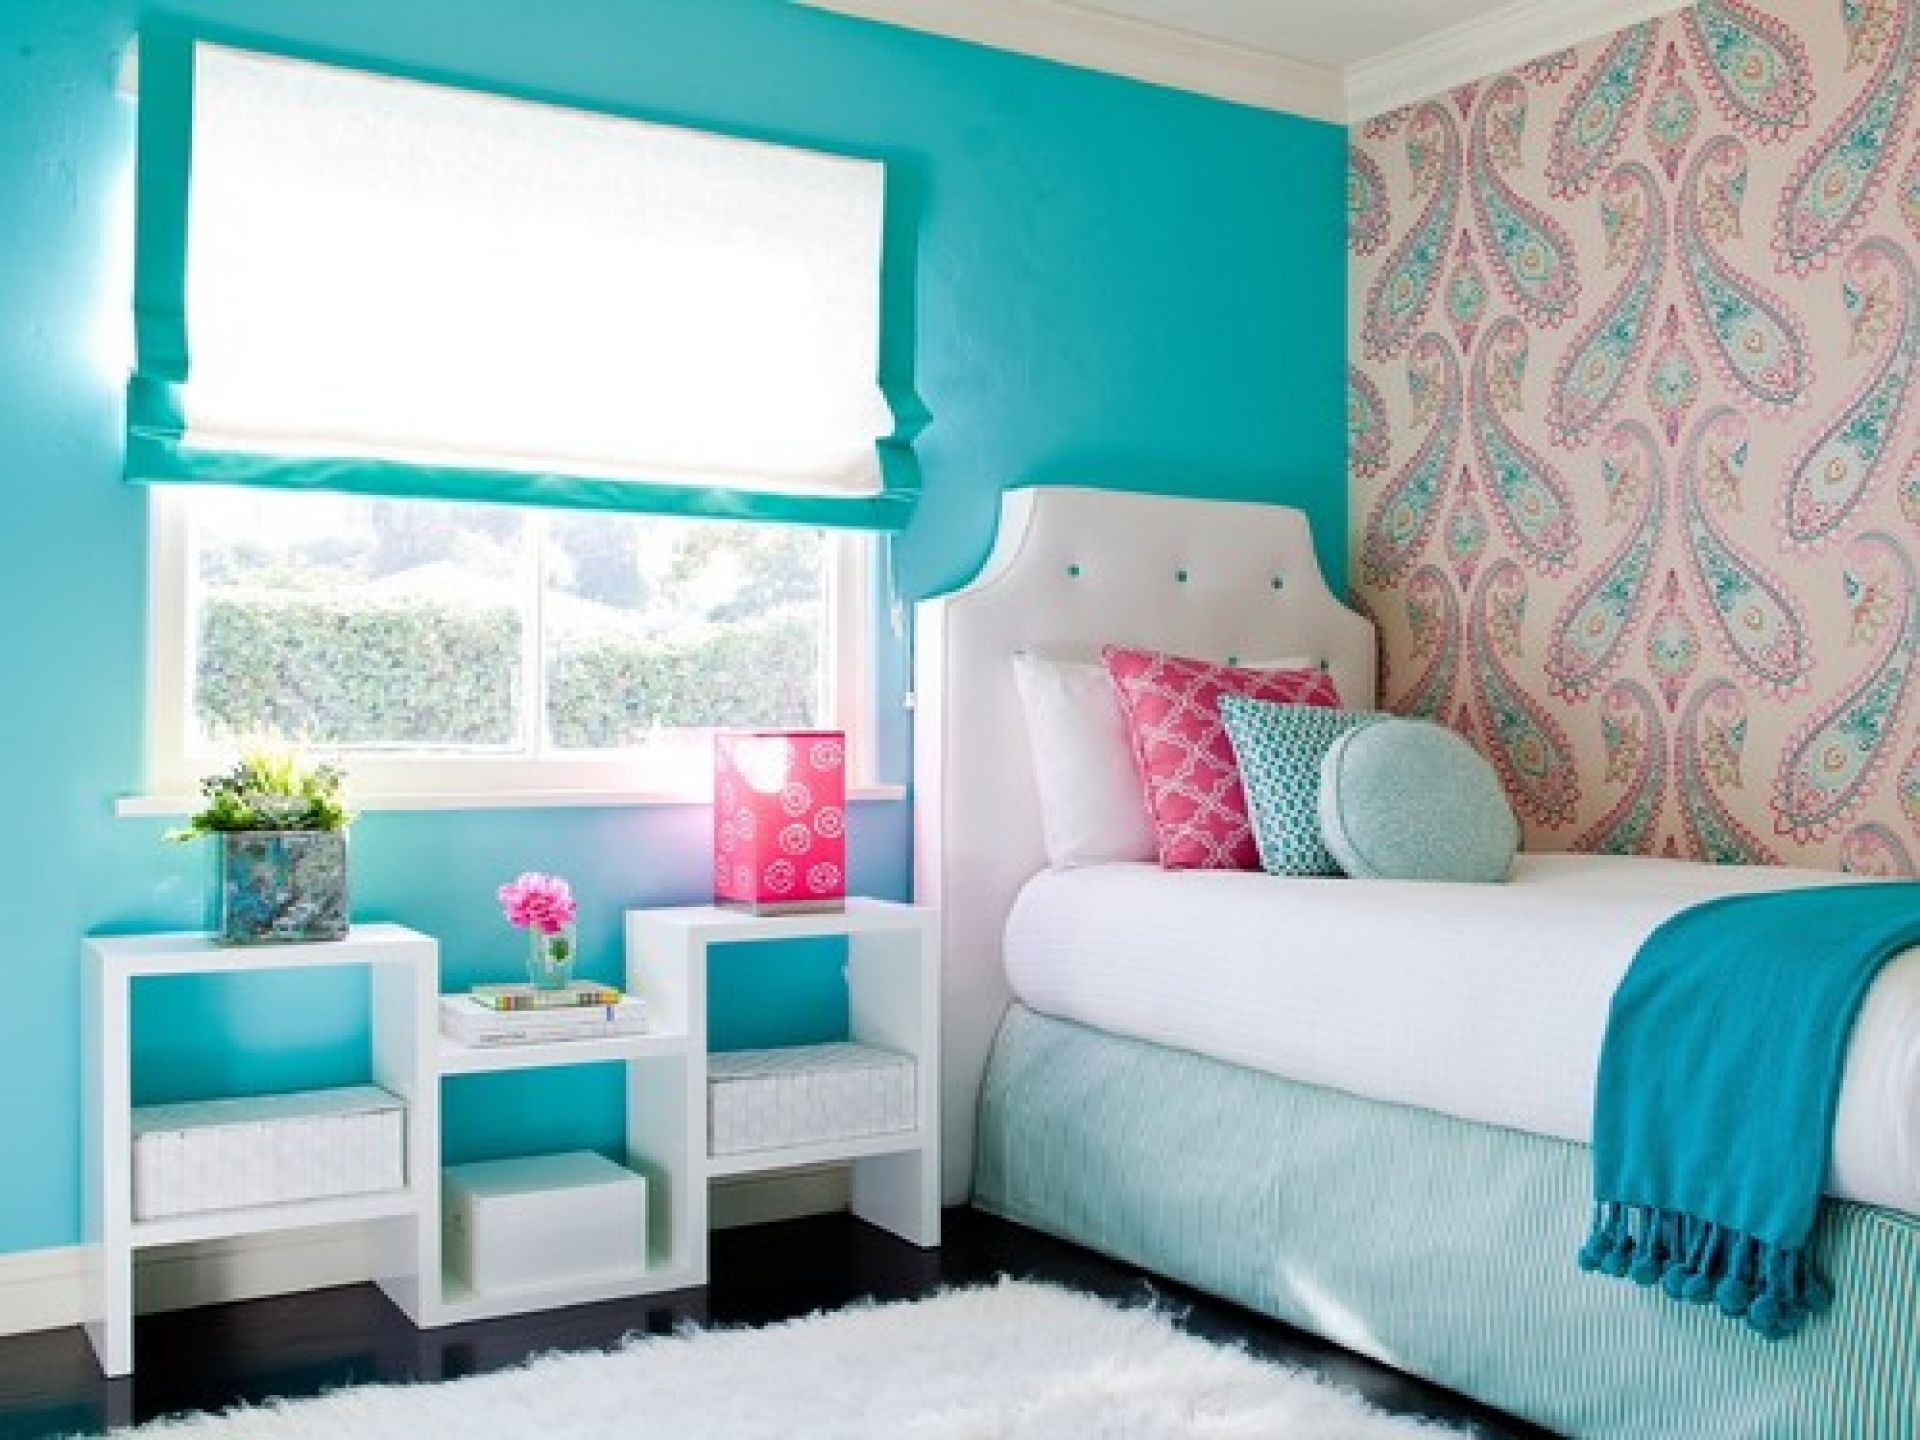 Simple design comfy room colors teenage girl bedroom wall for Bedroom ideas for teenage girls